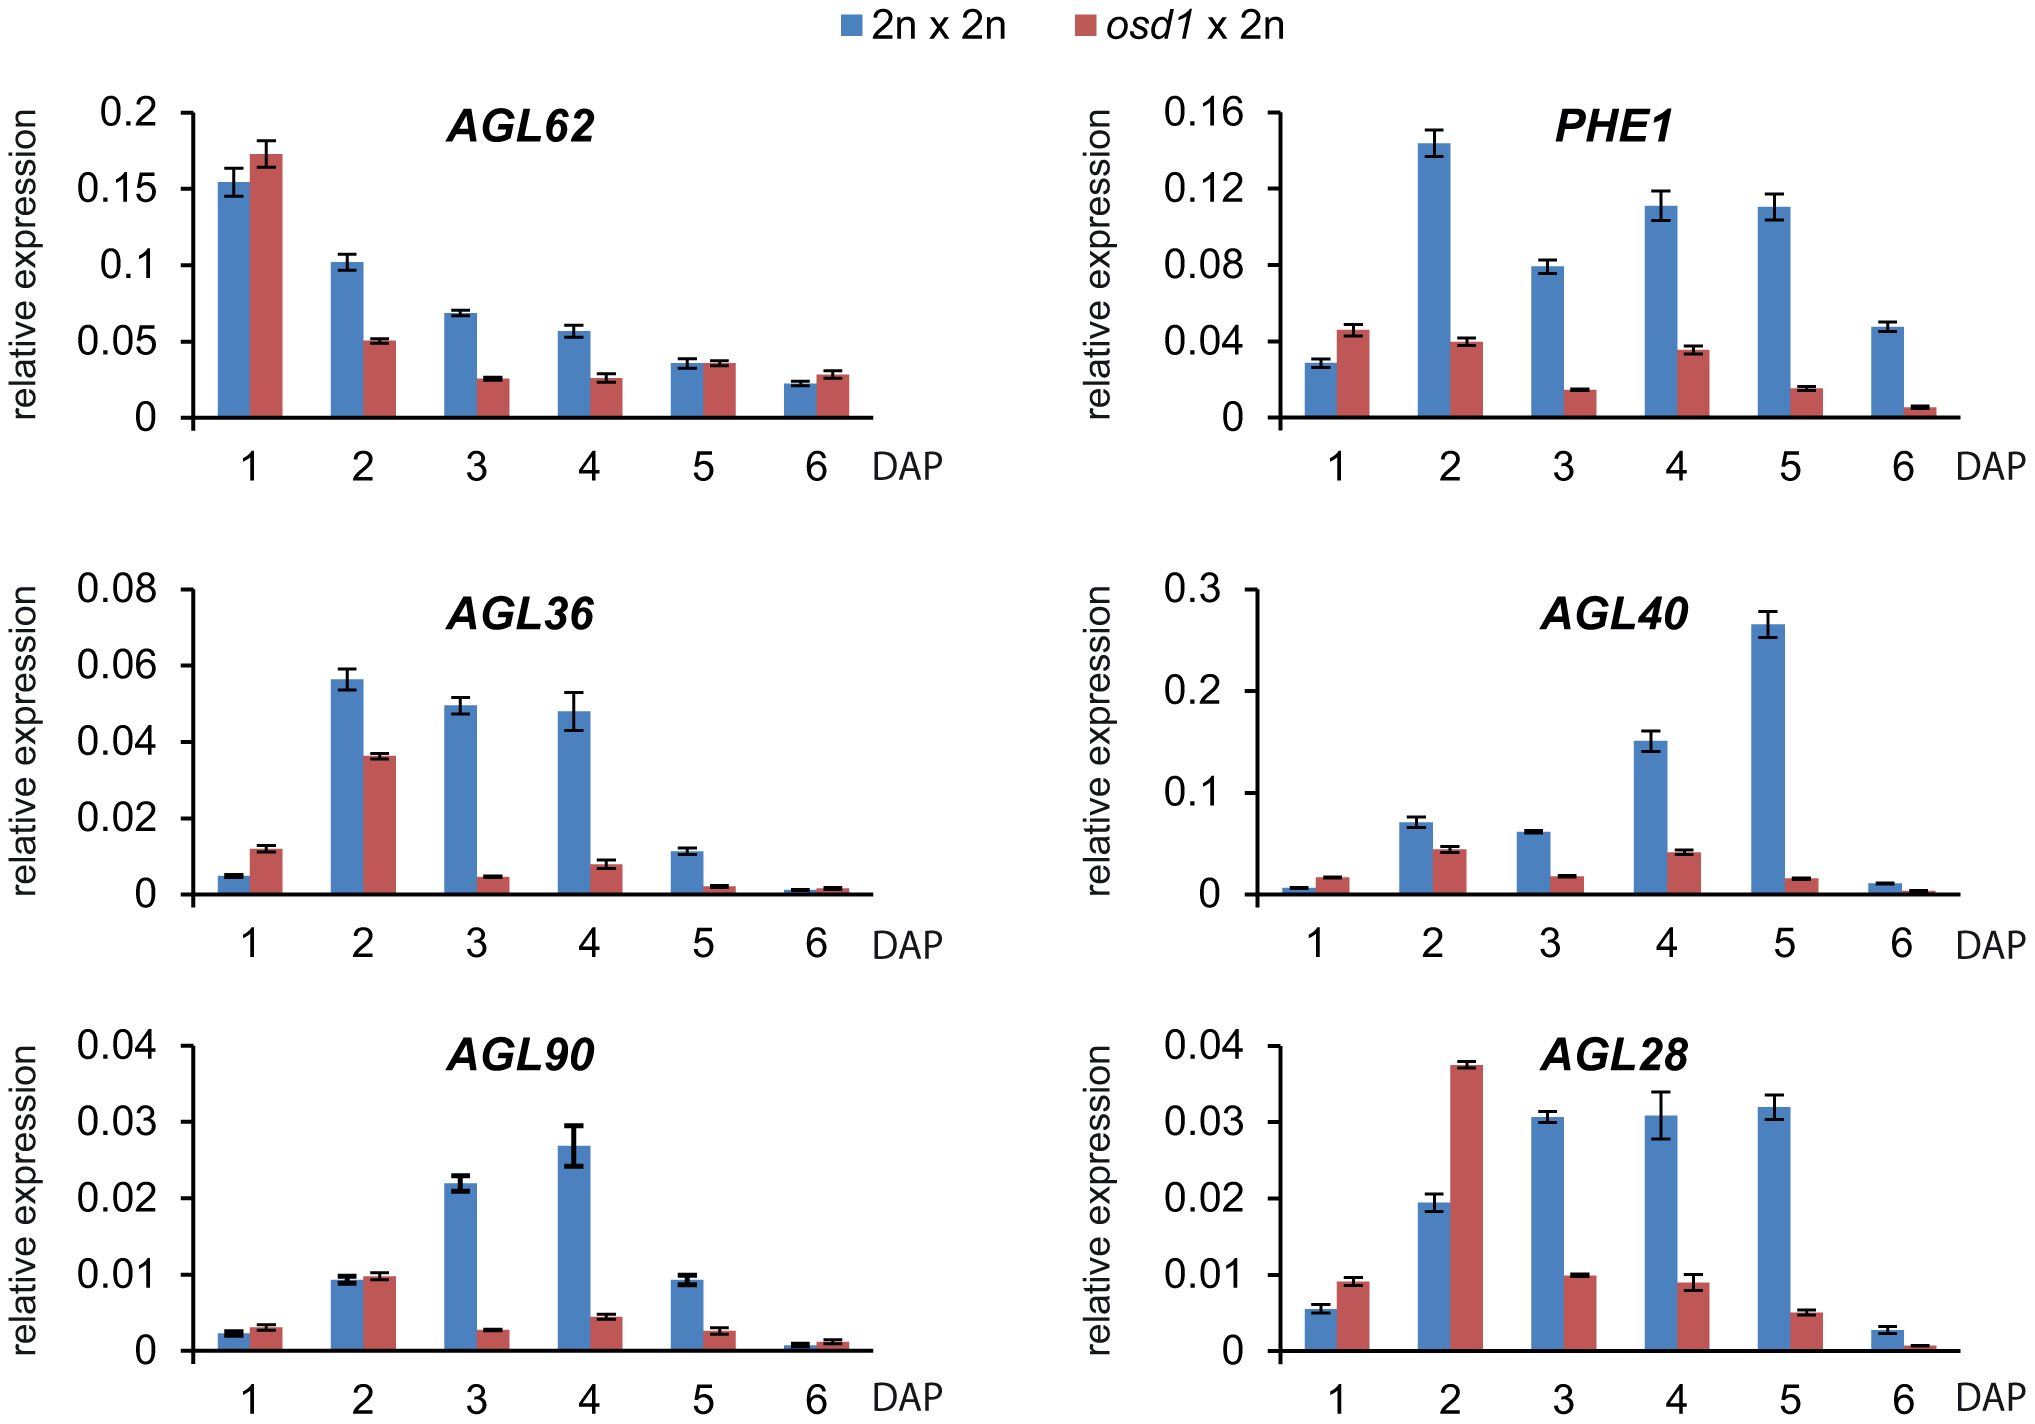 Expression of <i>AGL</i> MADS Box Genes Is Decreased in <i>osd1</i>×2n Crosses.